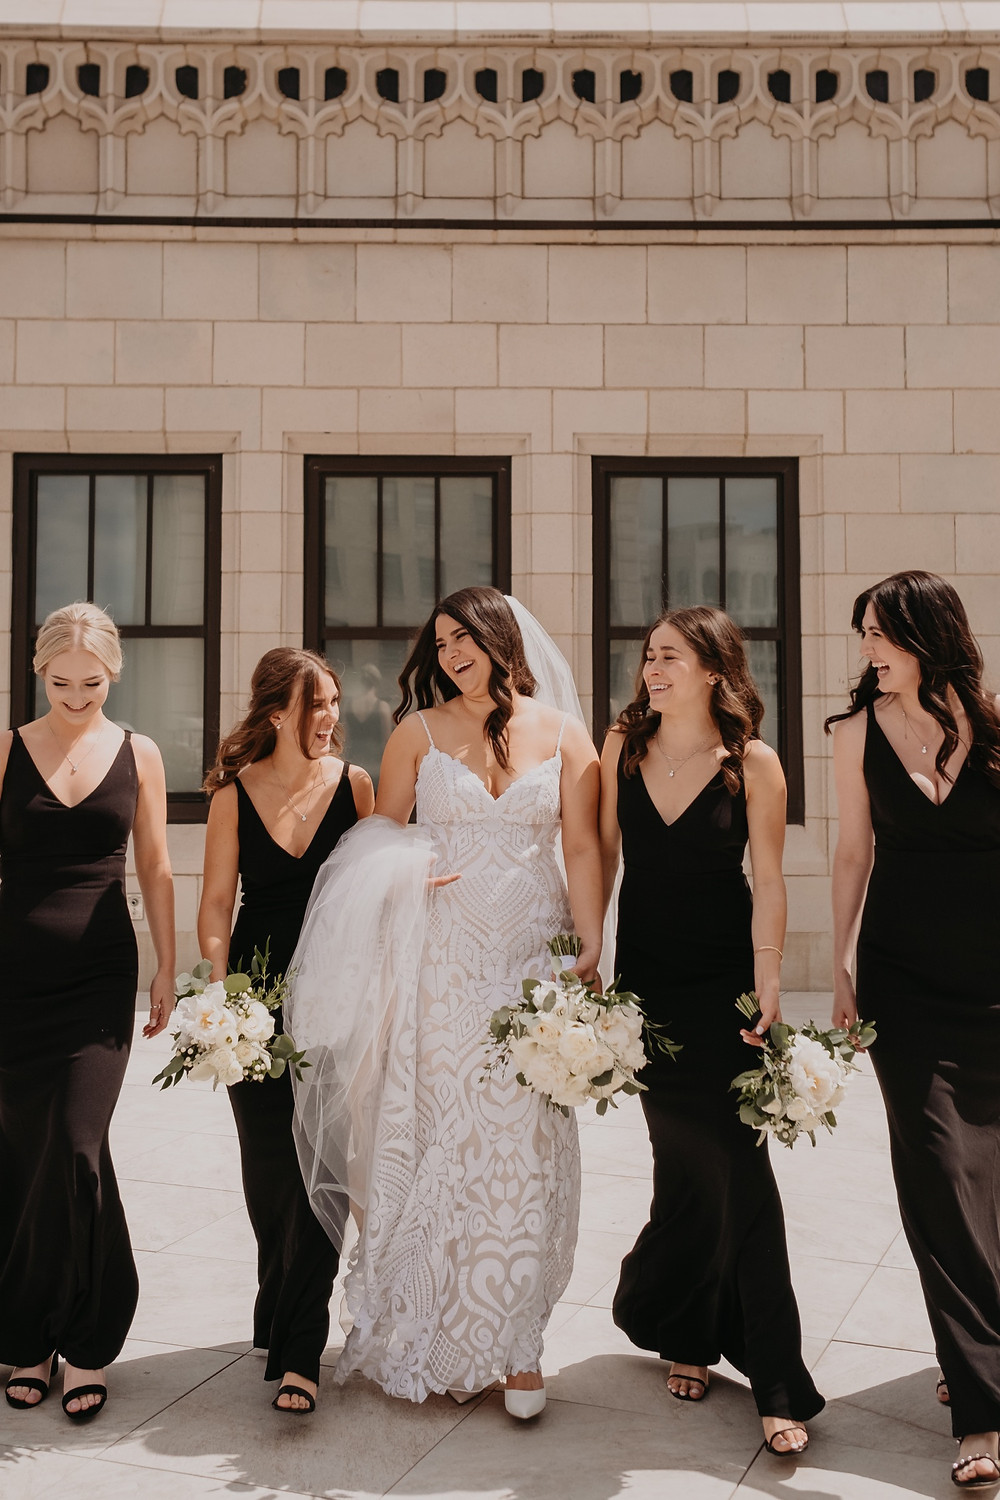 Bride with bridesmaids in Detroit wedding. Photographed by Nicole Leanne Photography.